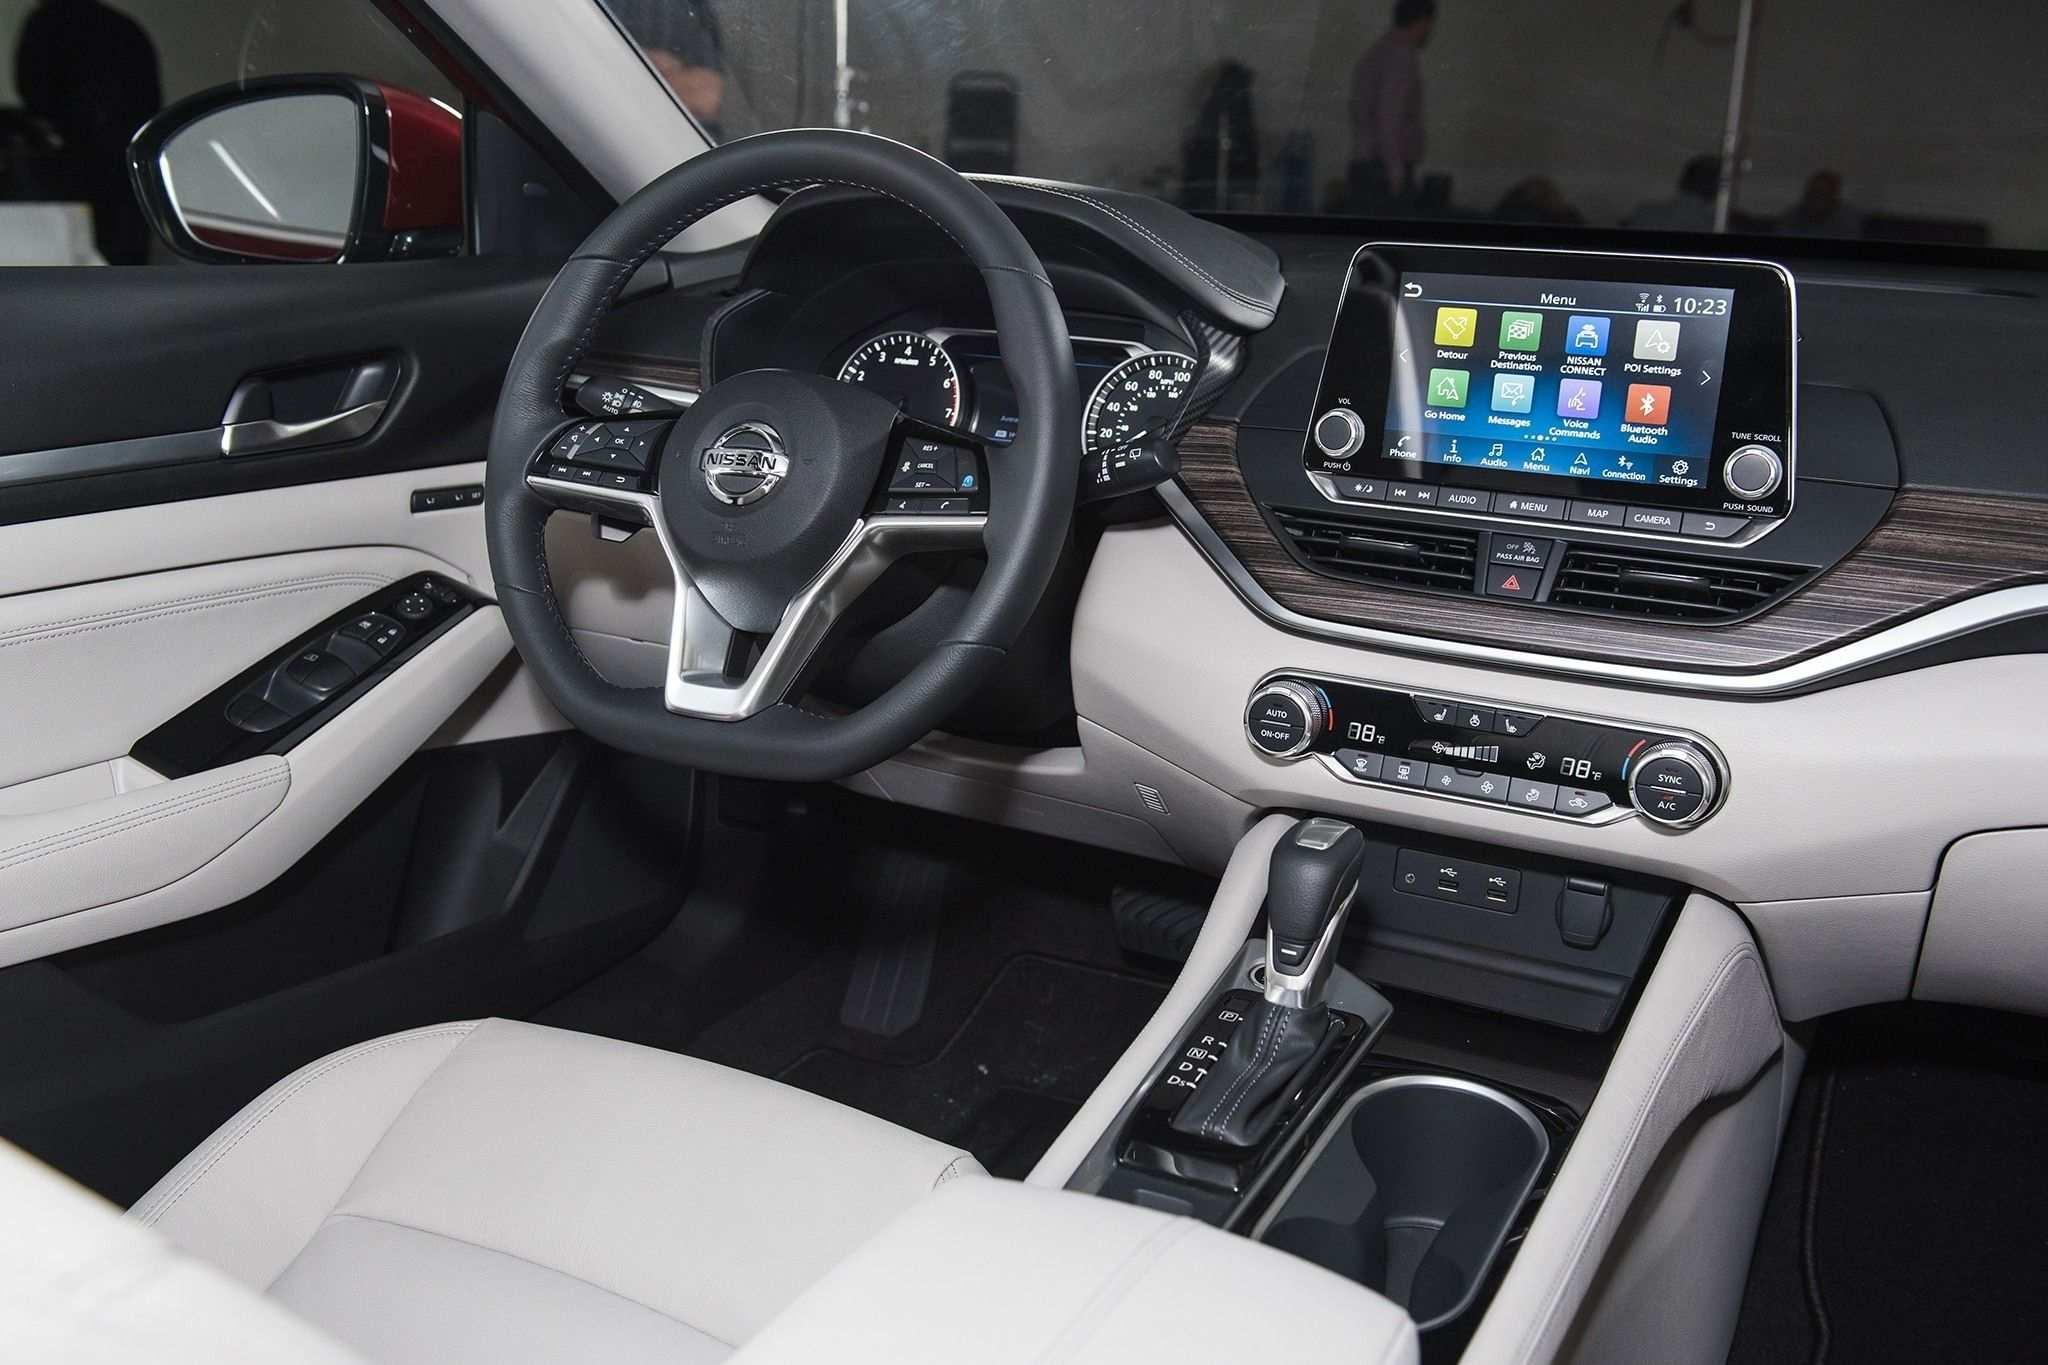 12 Gallery of The 2019 Nissan Altima Interior Redesign And Concept Interior by The 2019 Nissan Altima Interior Redesign And Concept